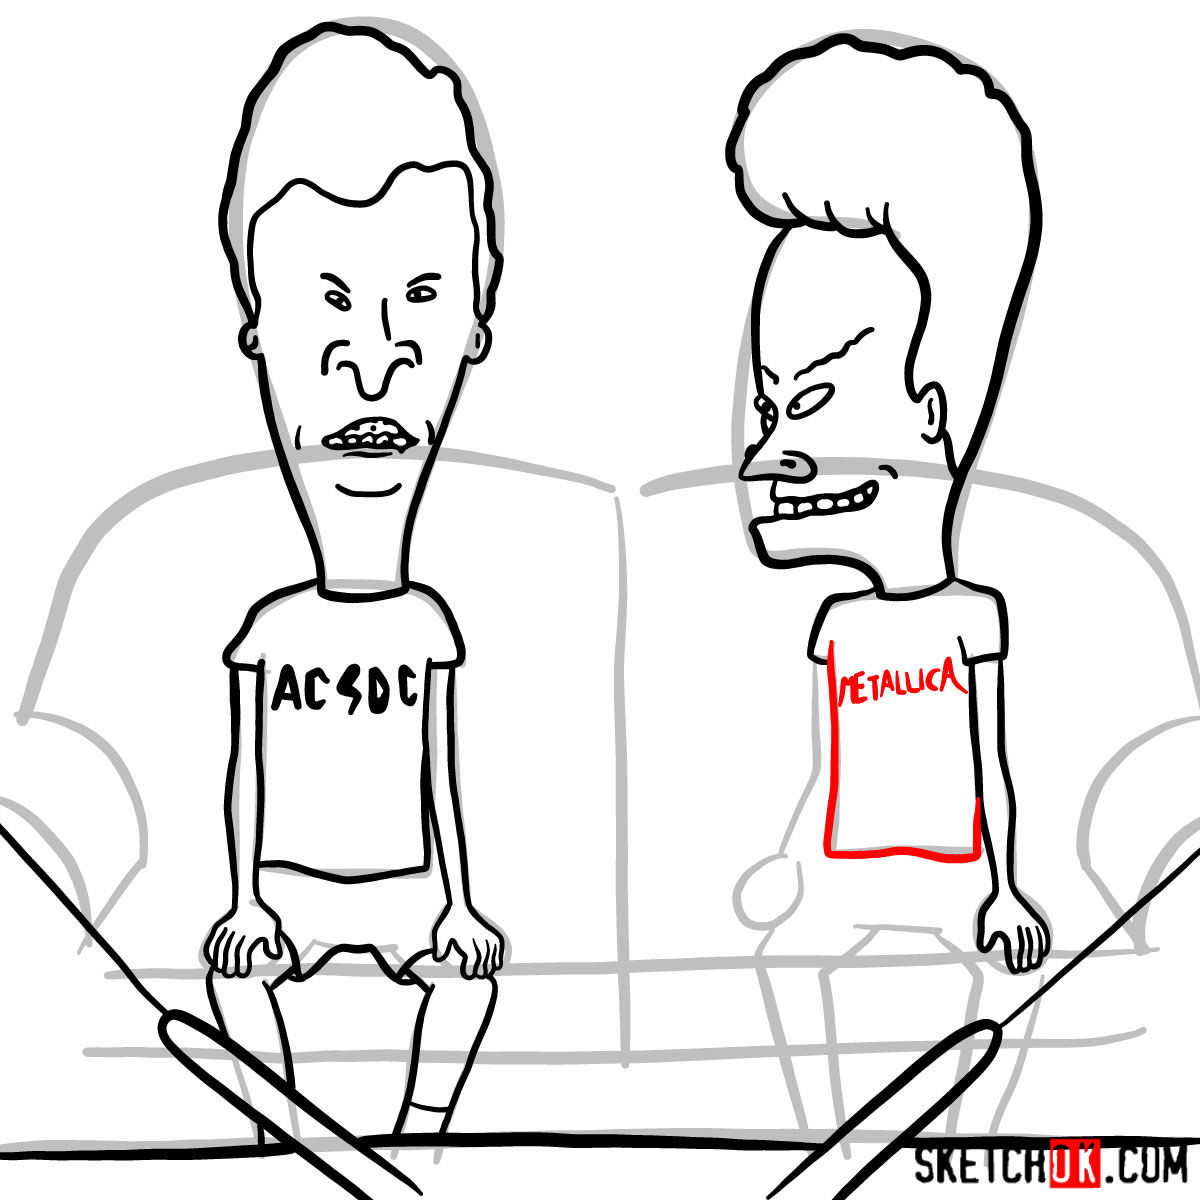 How to draw Beavis and Butt-Head - step 15